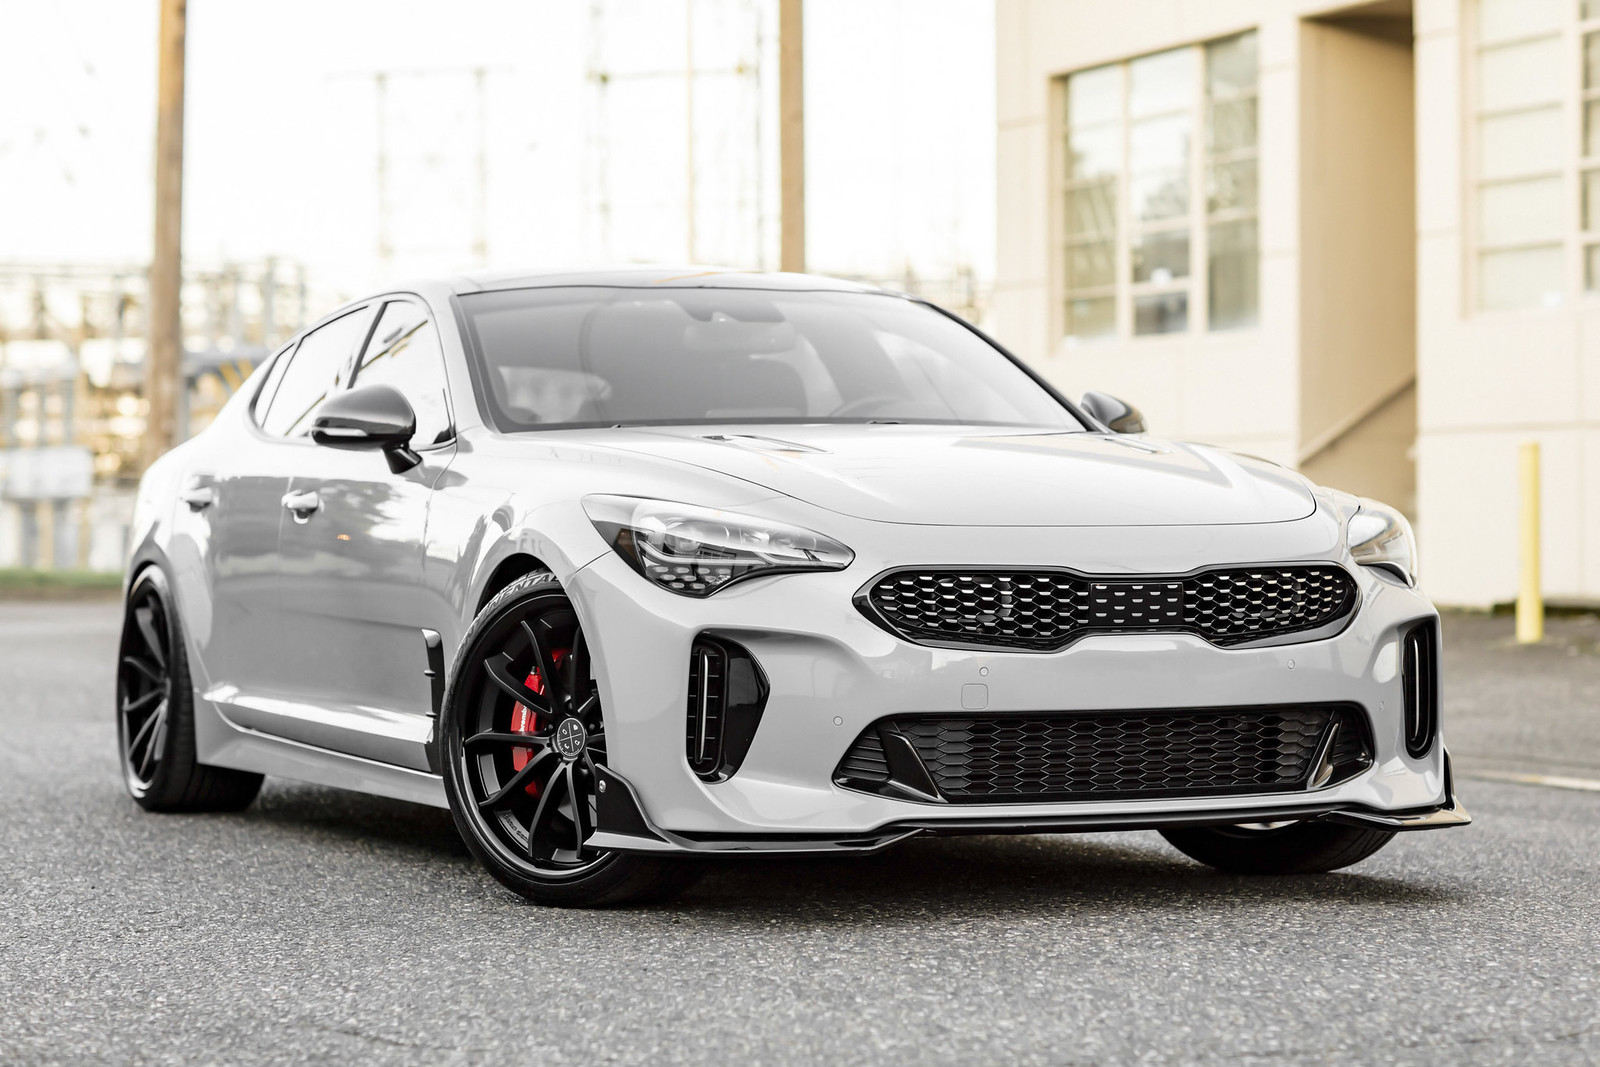 2018_Kia_Stinger_BD23_Two_Tone_Black_11